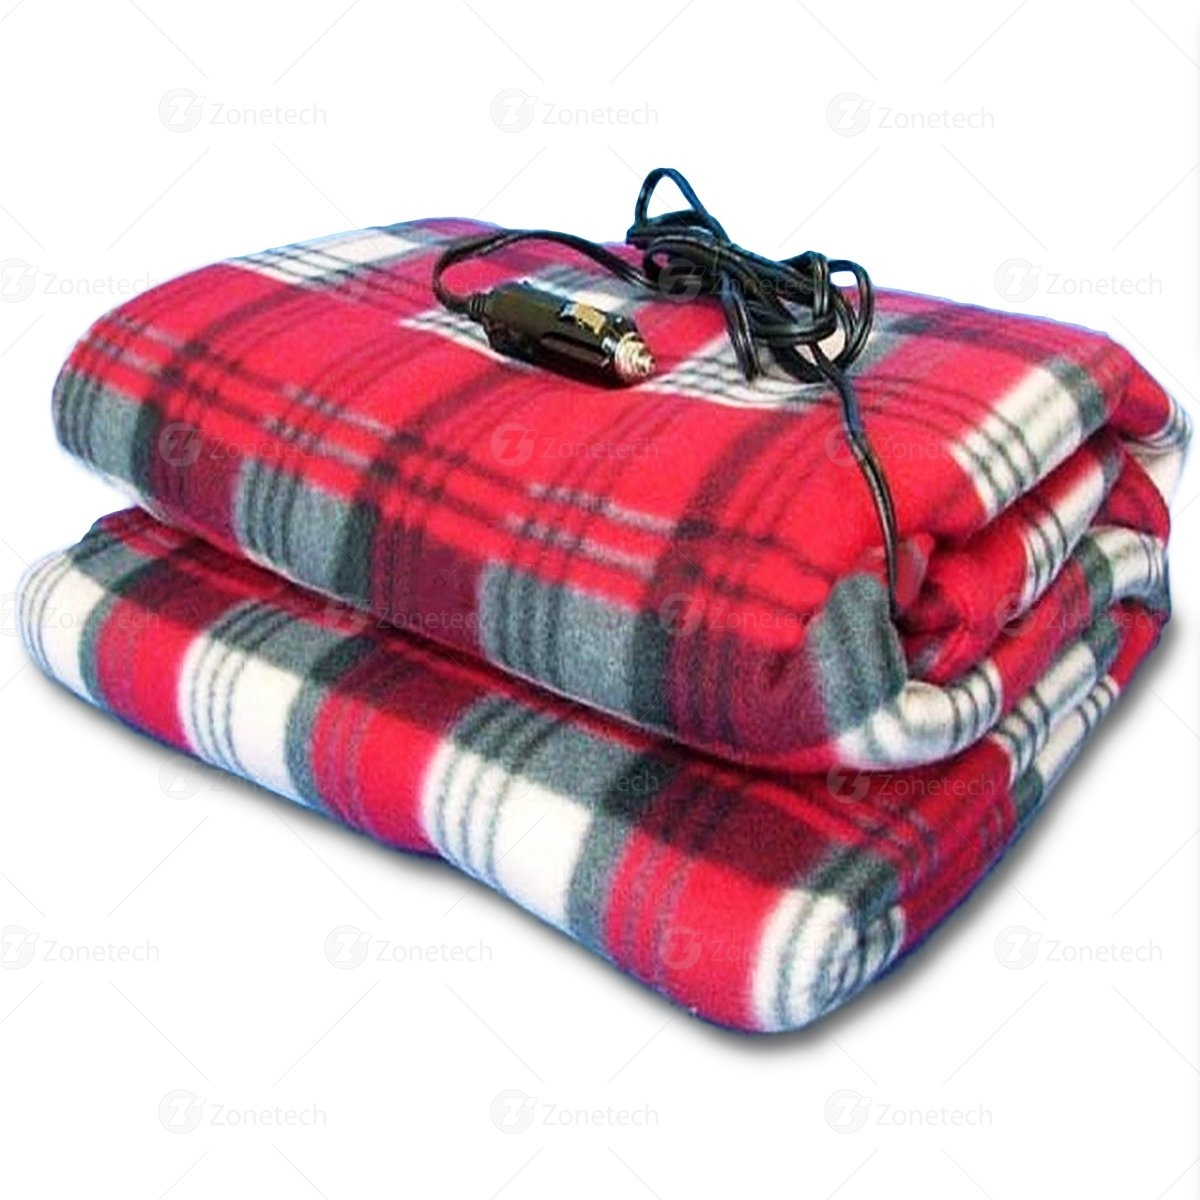 Zone Tech Car Heated Travel Blanket – Plaid Premium Quality 12V Automotive Comfortable Heating Car Seat Blanket Great for Summer Comfort Wheels